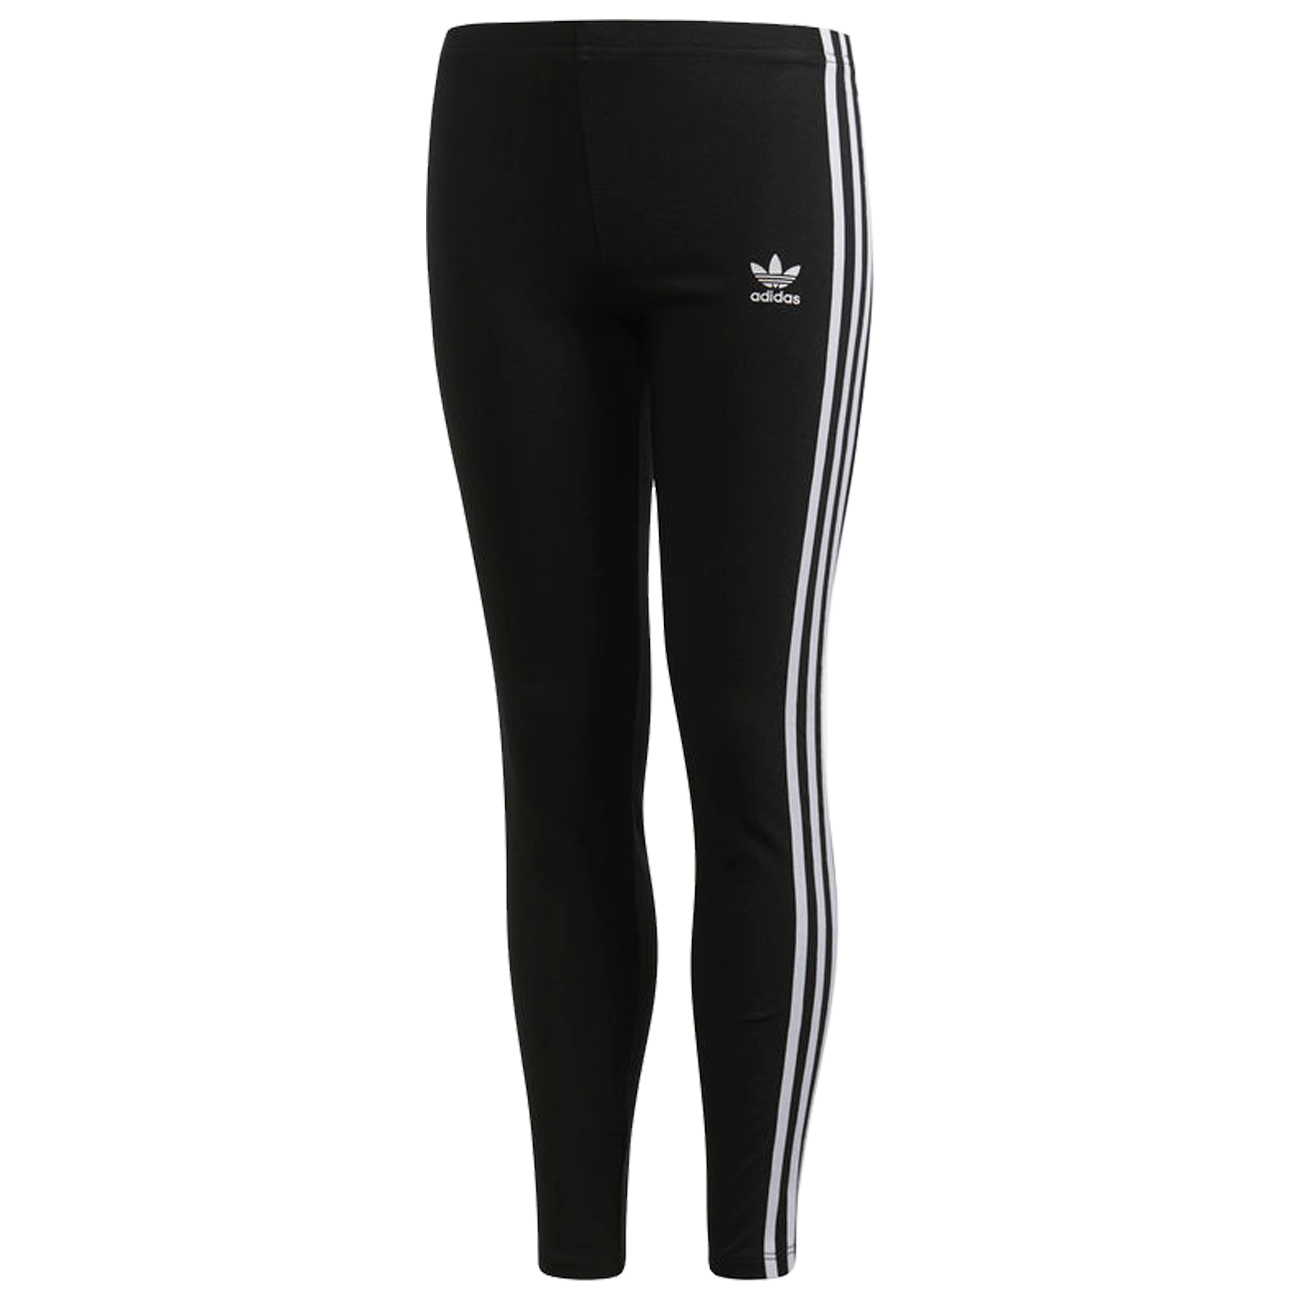 adidas-leggings-black-white-sort-hvid